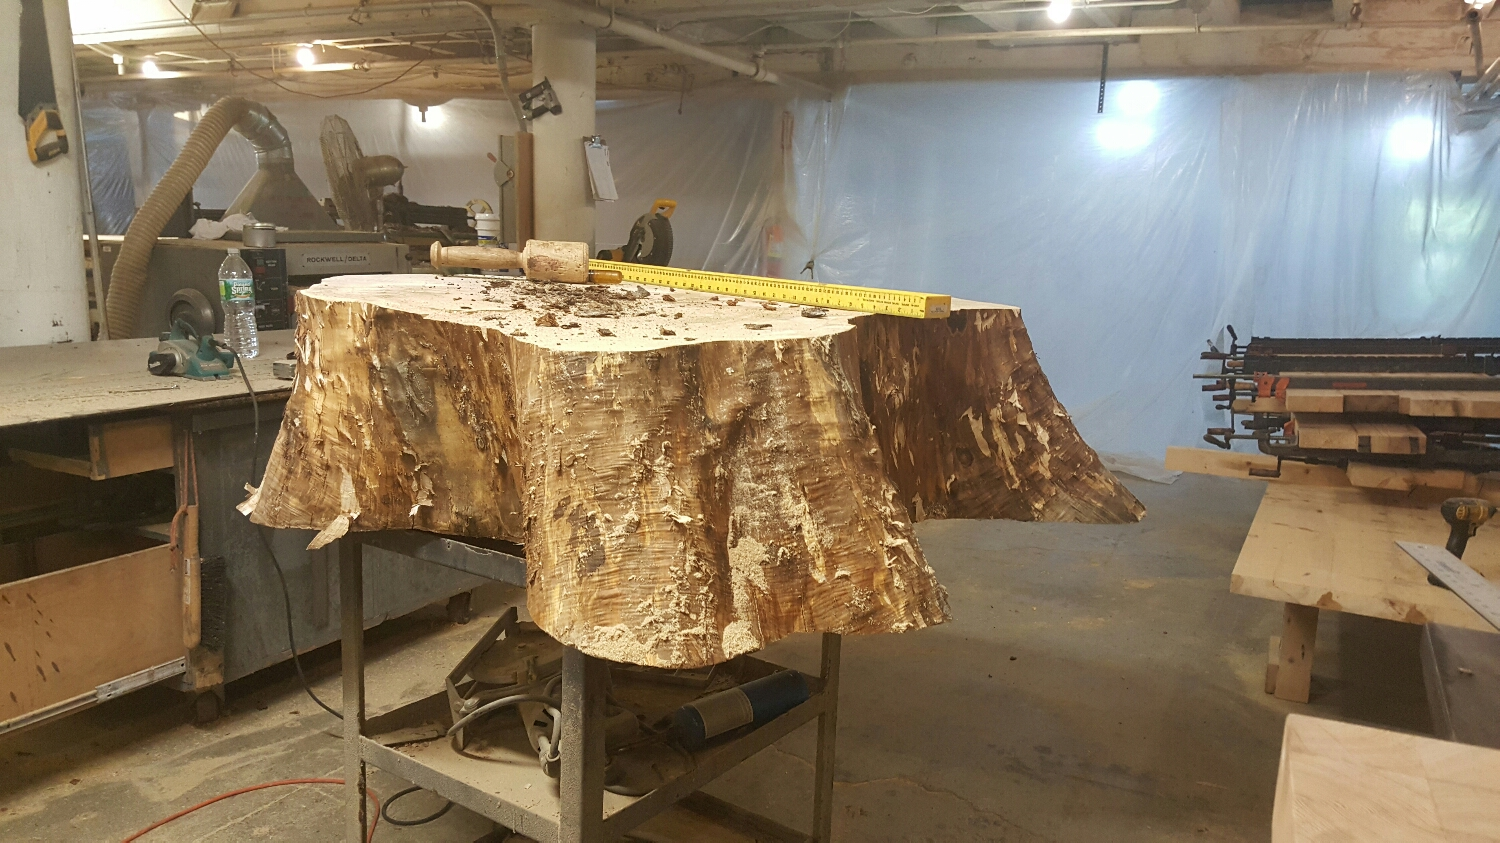 It is one stunning stump that will be an even more stunning table.